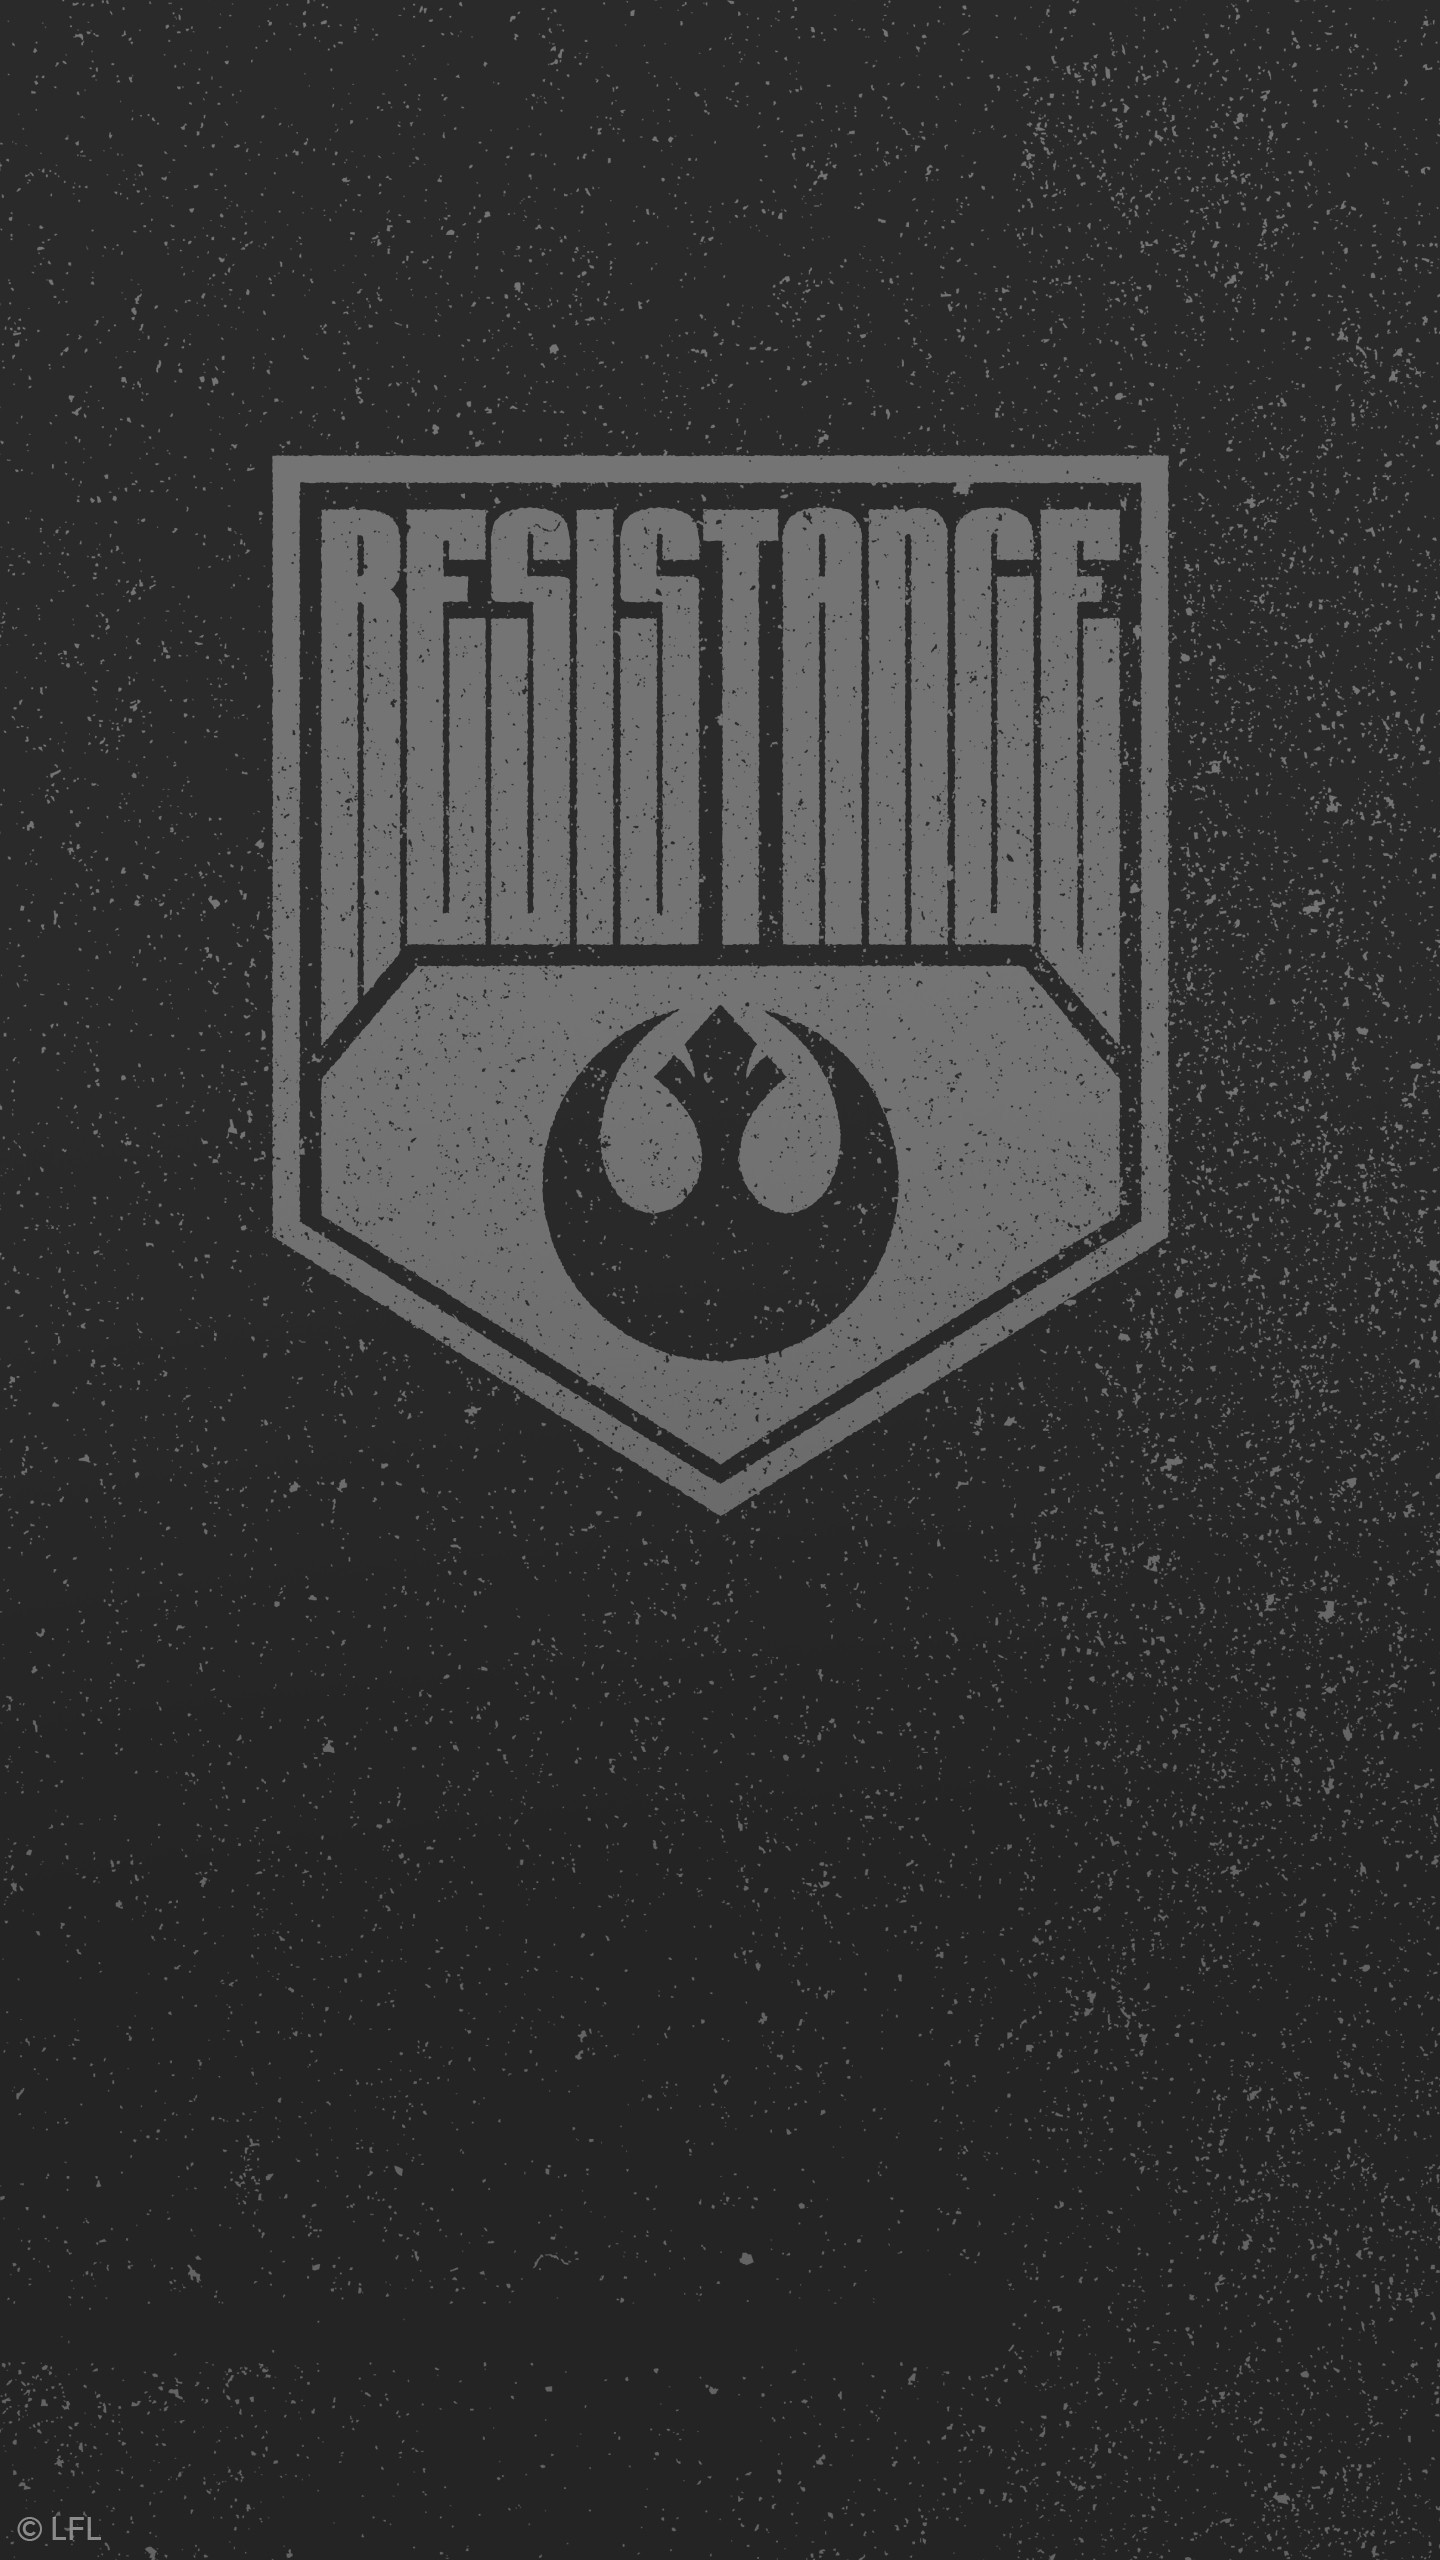 Star wars wallpaper for android 69 images 1440x2560 resistance star wars localoffer android wallpaper star wars voltagebd Choice Image